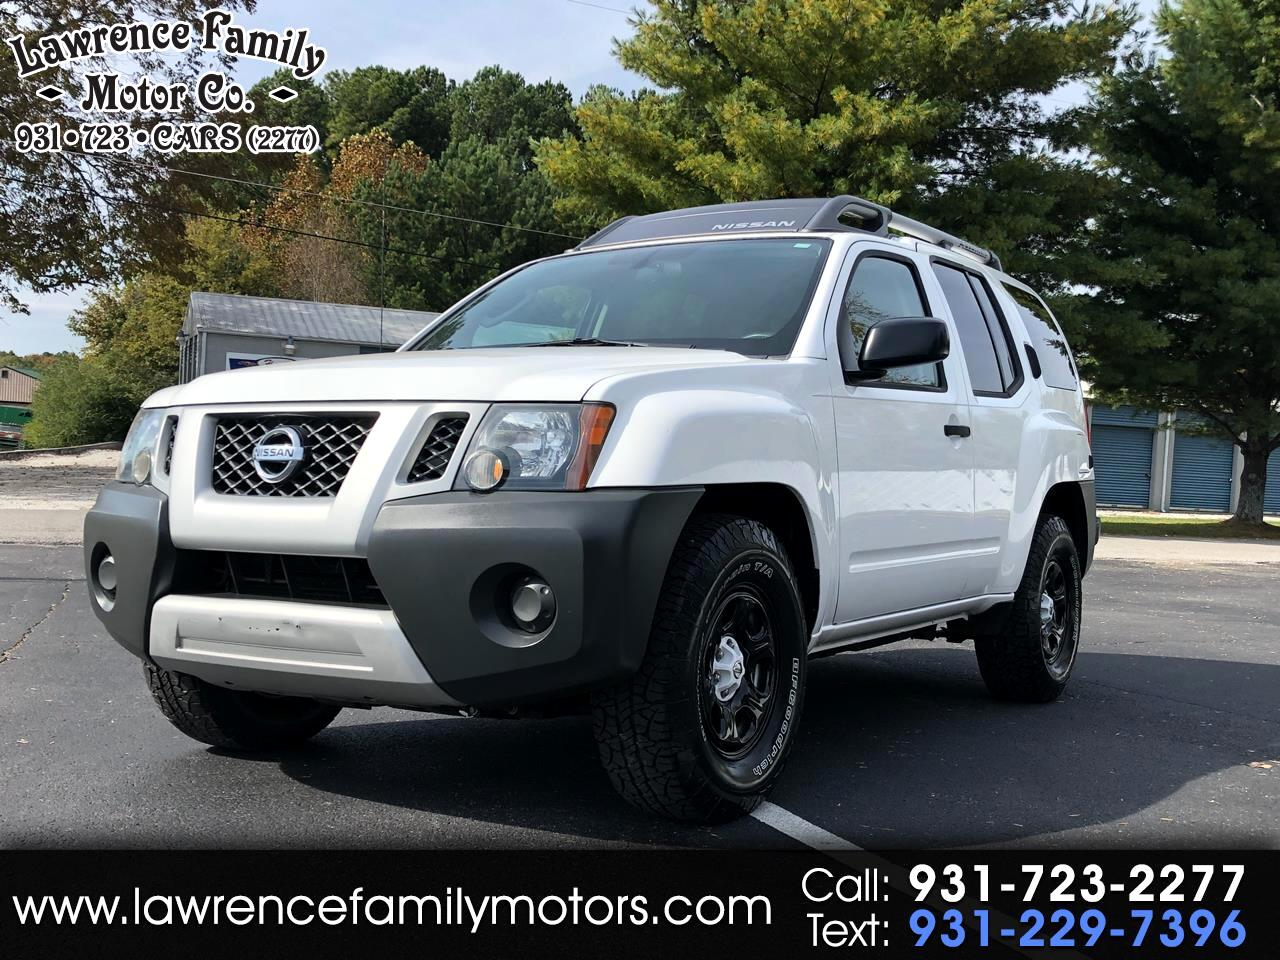 Used Cars For Sale Manchester Tn 37355 Lawrence Family Motor Co 2011 Nissan Xterra Fuel Filter S 2wd